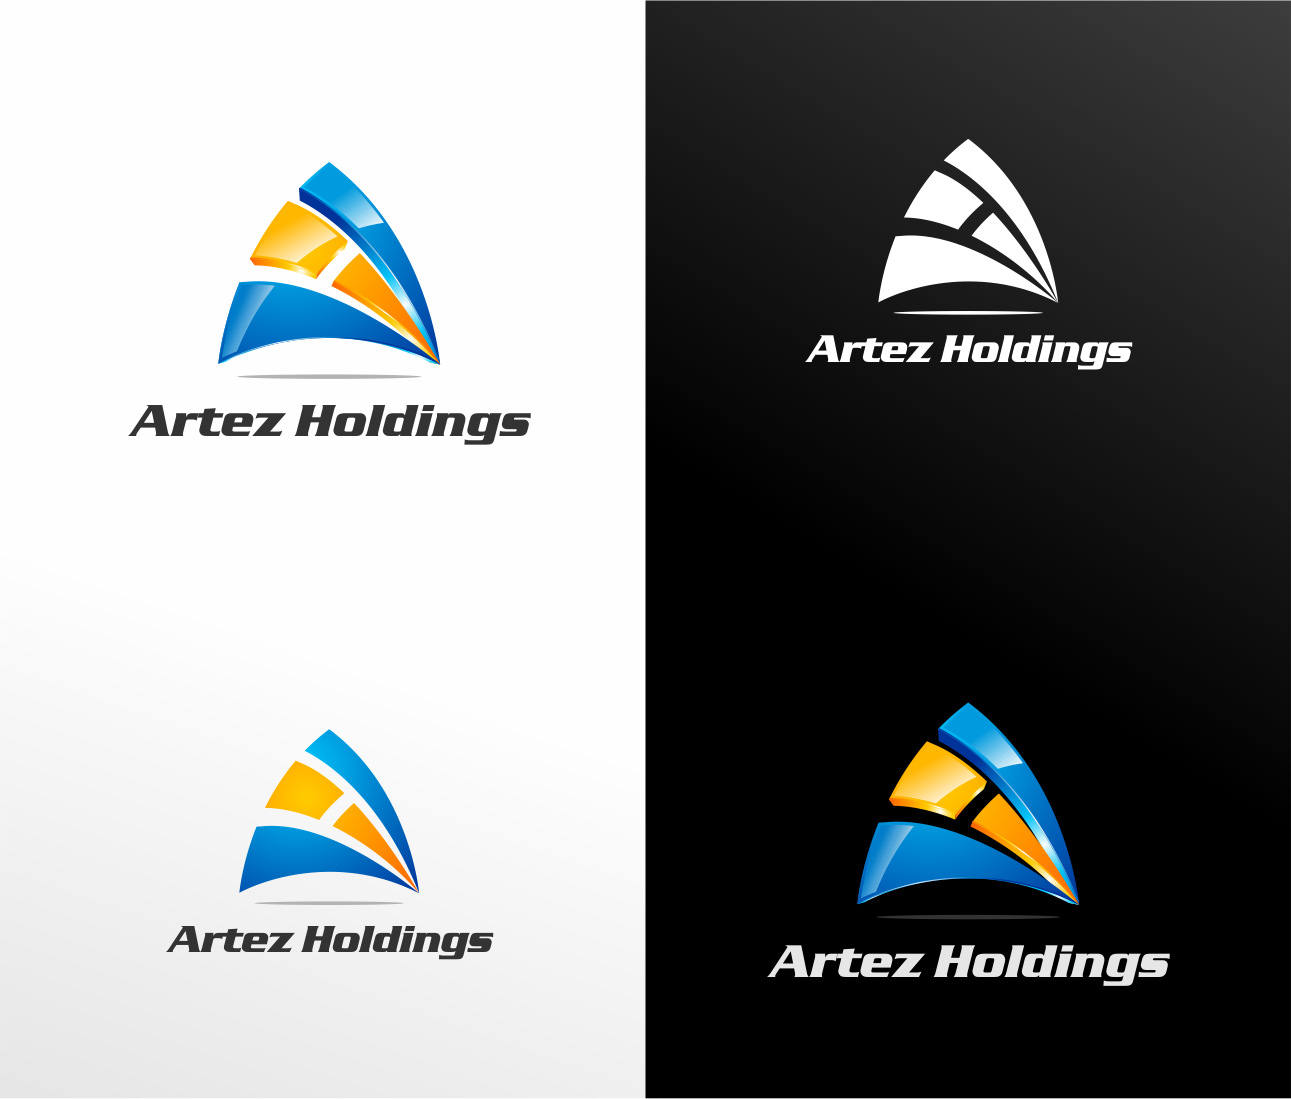 Logo Design by haidu - Entry No. 24 in the Logo Design Contest New Logo Design for Artez Holdings.